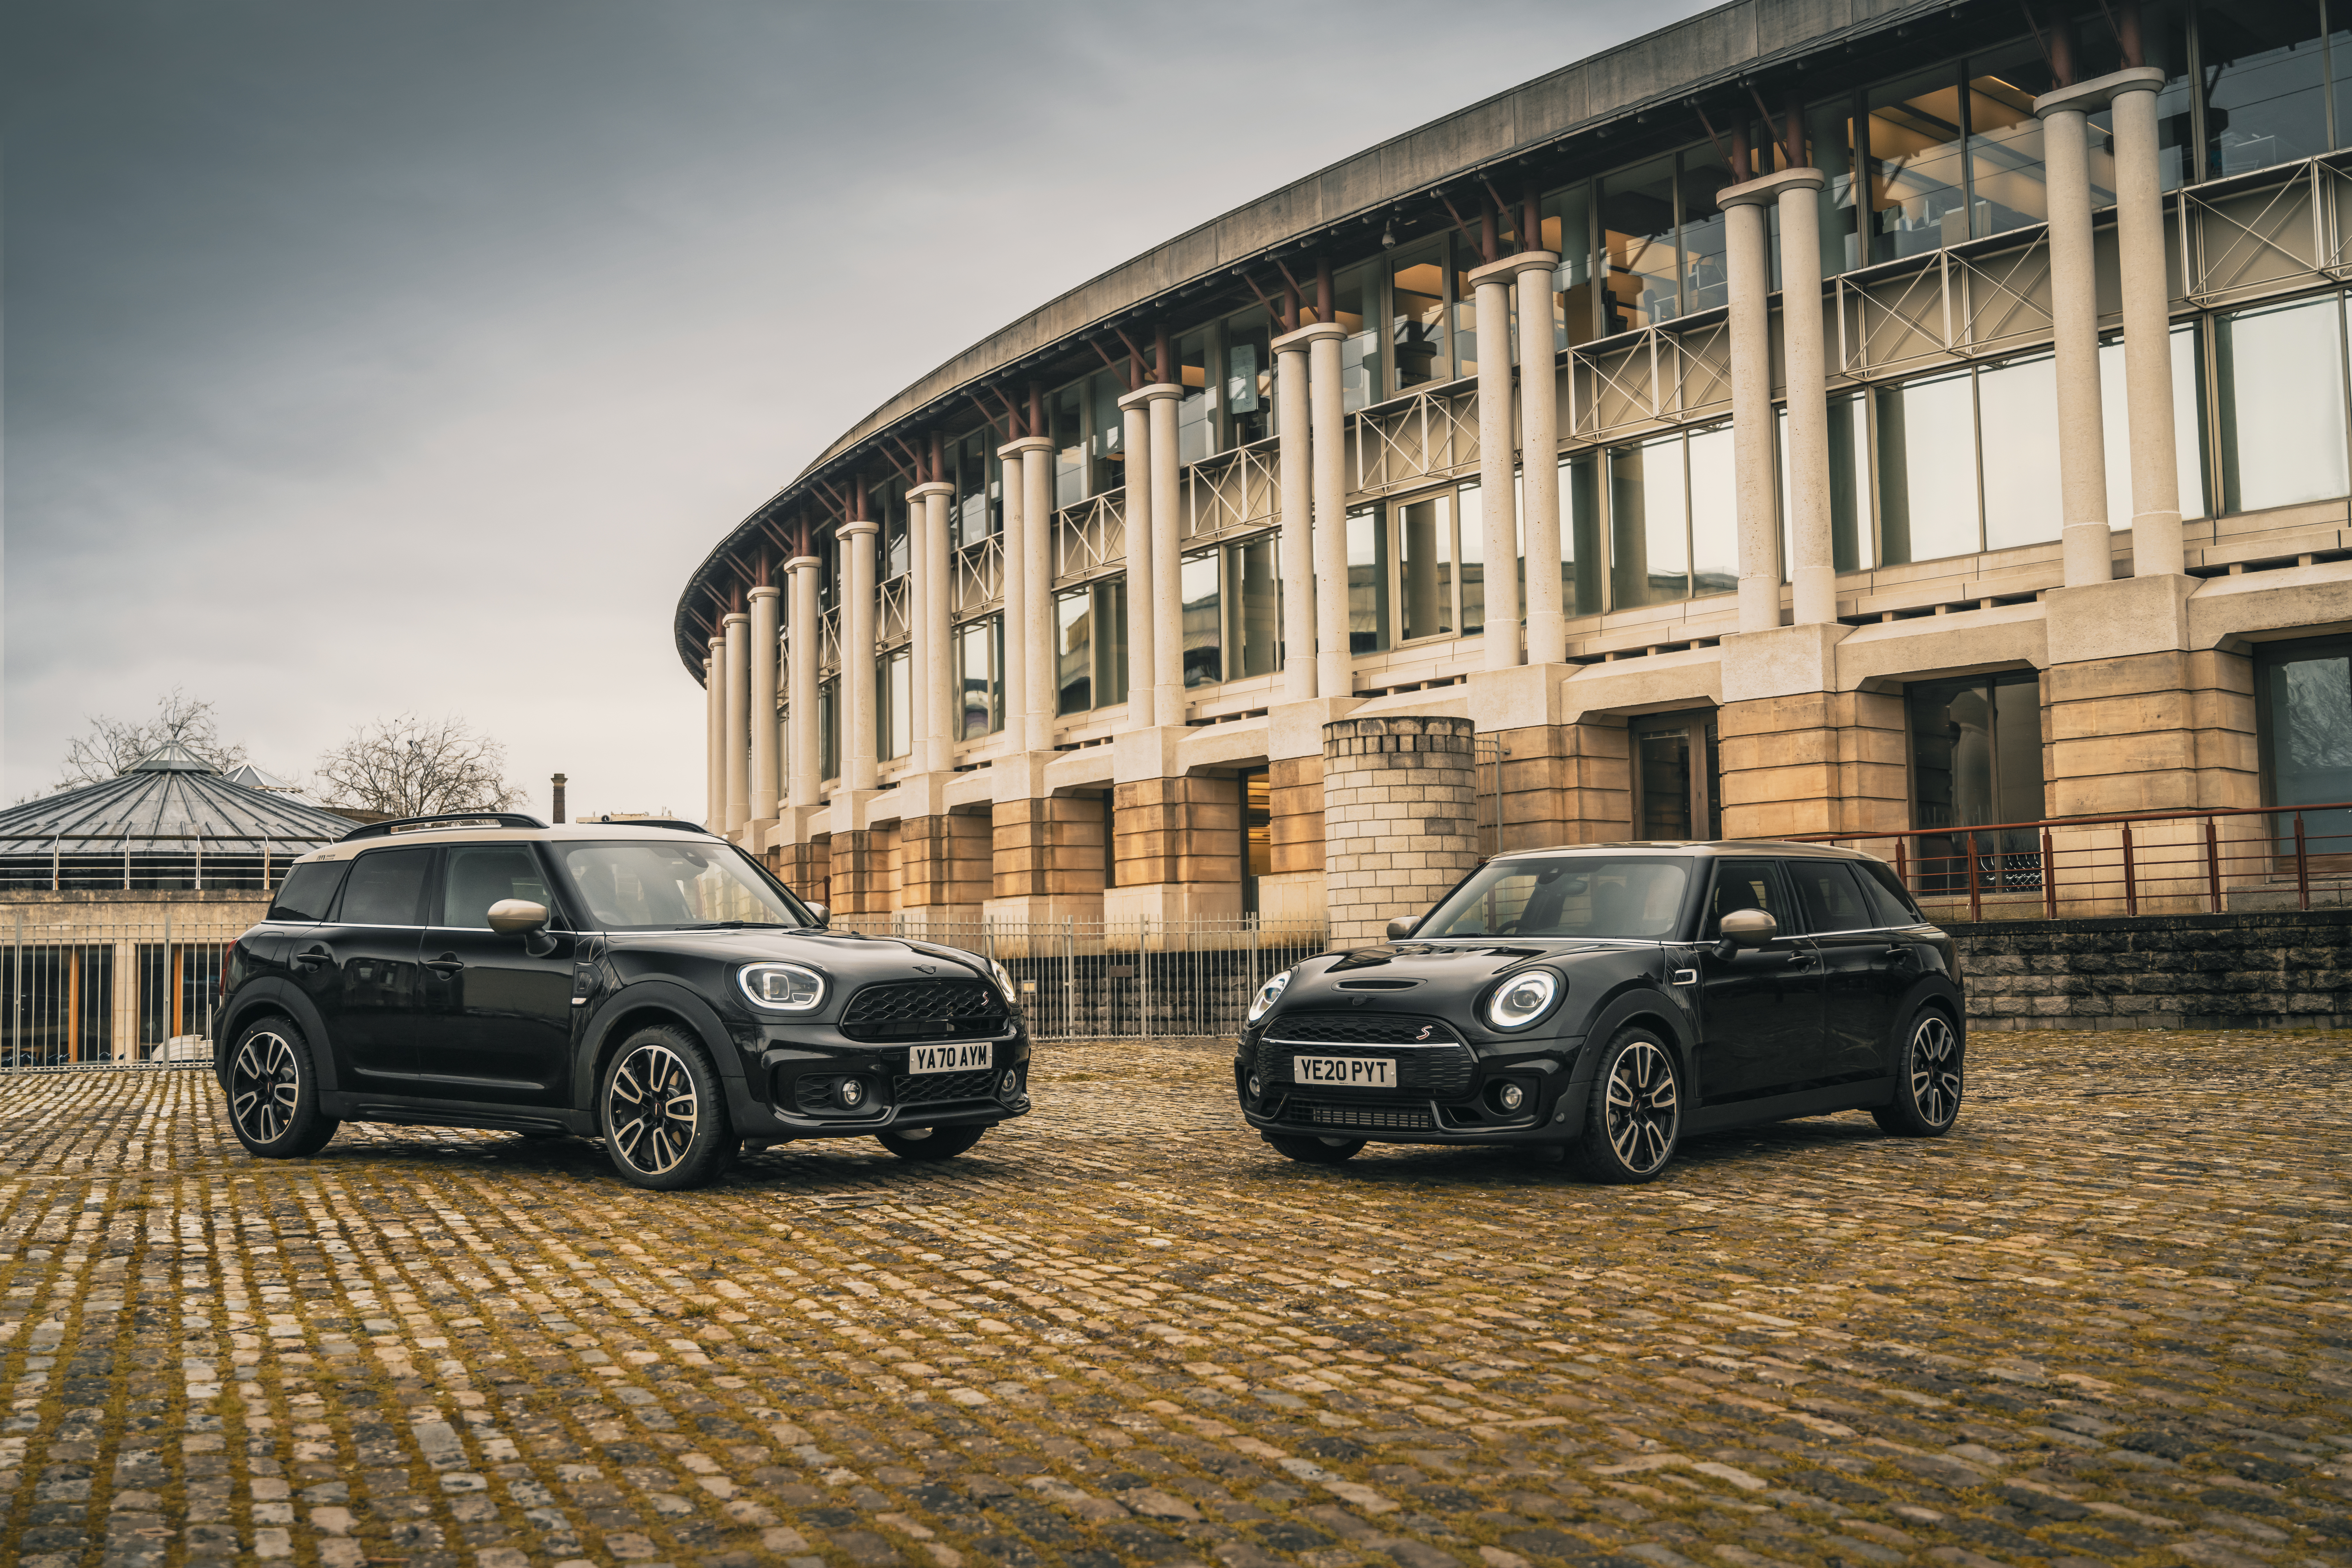 New Shadow Edition unveiled for MINI Clubman and MINI Countryman